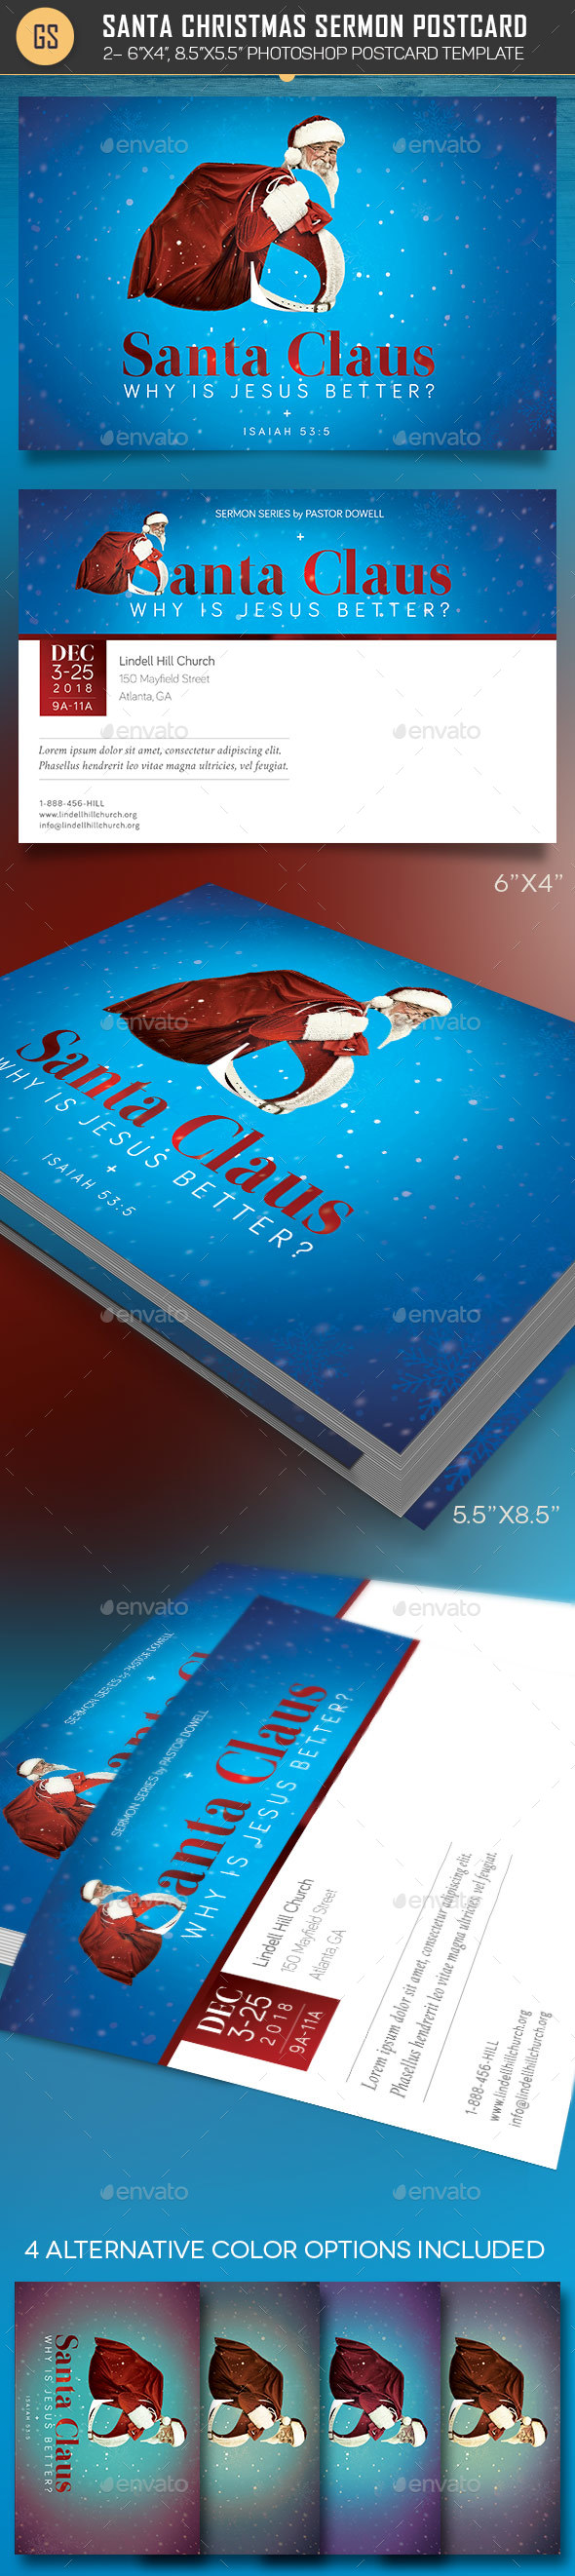 Santa Christmas Sermon Postcard Template - Church Flyers